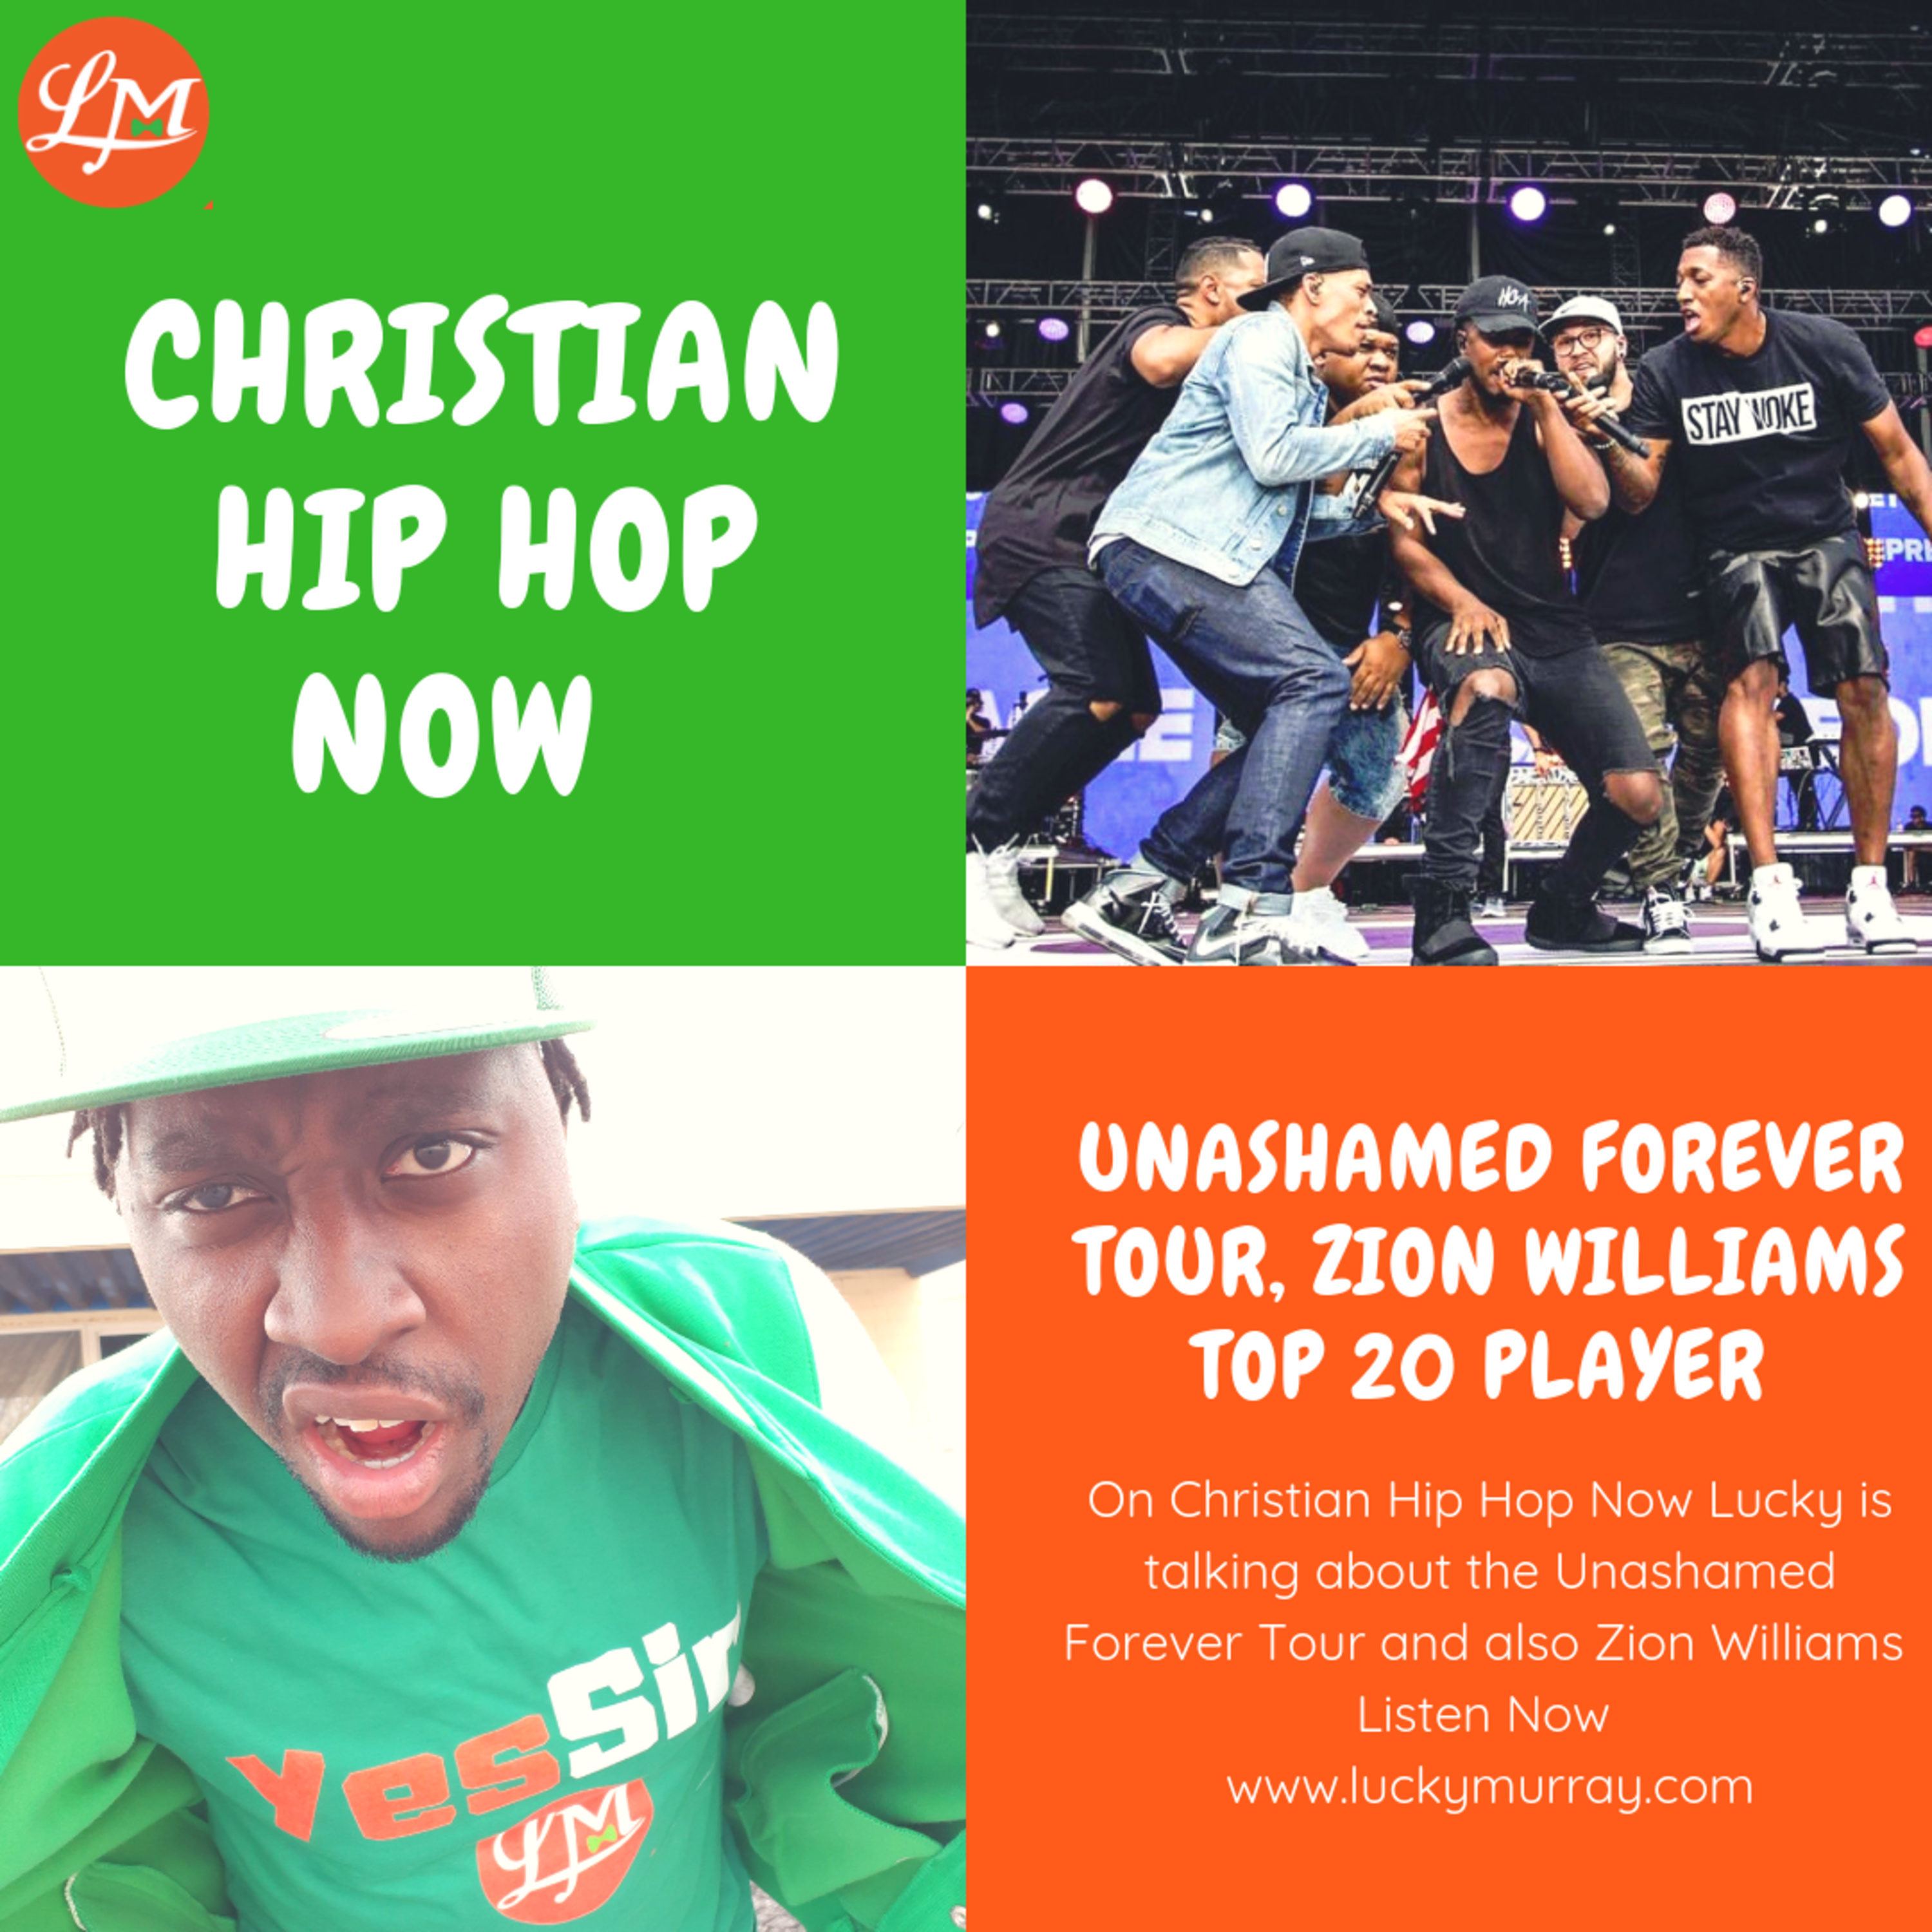 Unashamed Forever Tour, Zion Williams Top 20 Player, Don Ryvcko